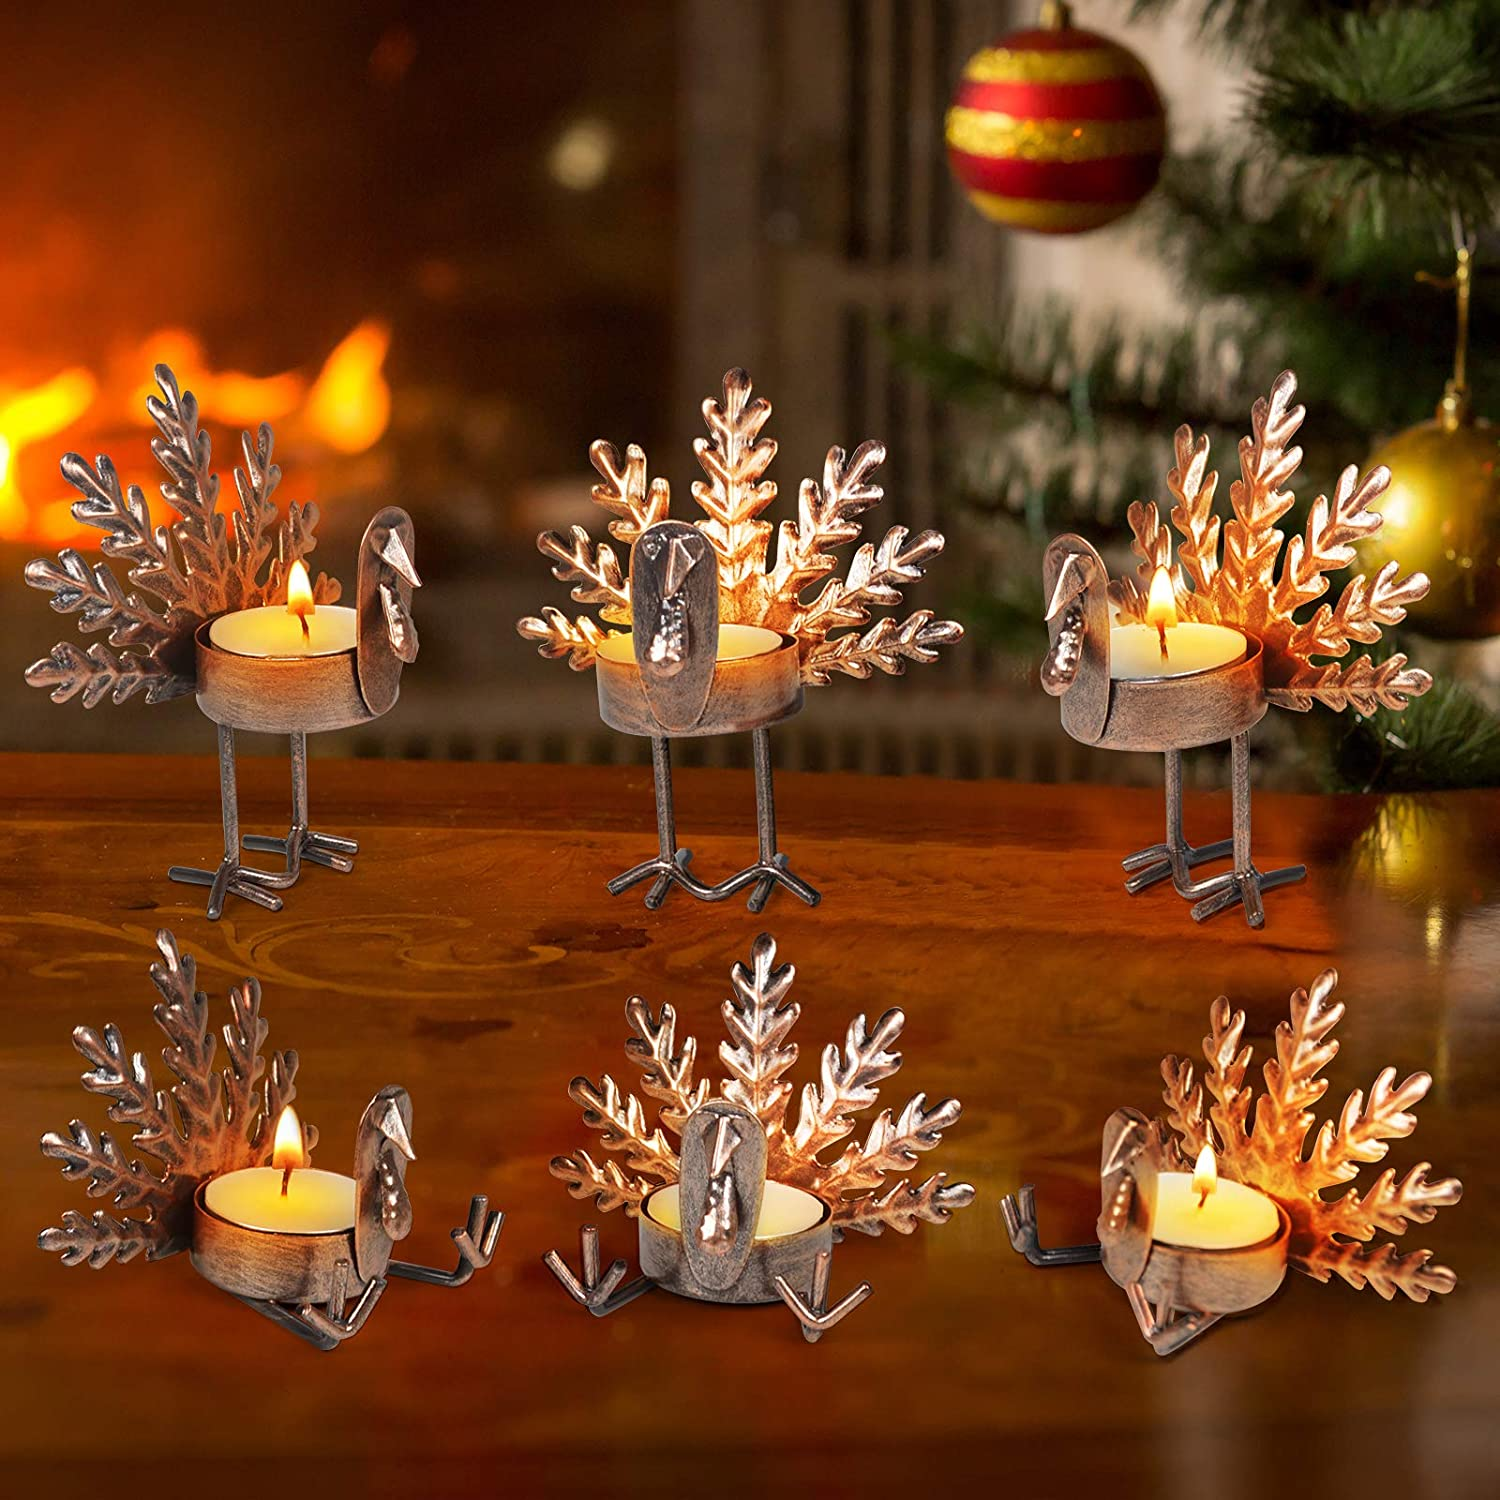 ALLADINBOX Set of 6 Turkey Tea Light Candle Holders Thanksgiving Centerpiece, Fall Decorations, Home Decor, Tea Light Decorations, Table Kitchen Thanksgiving Decorations